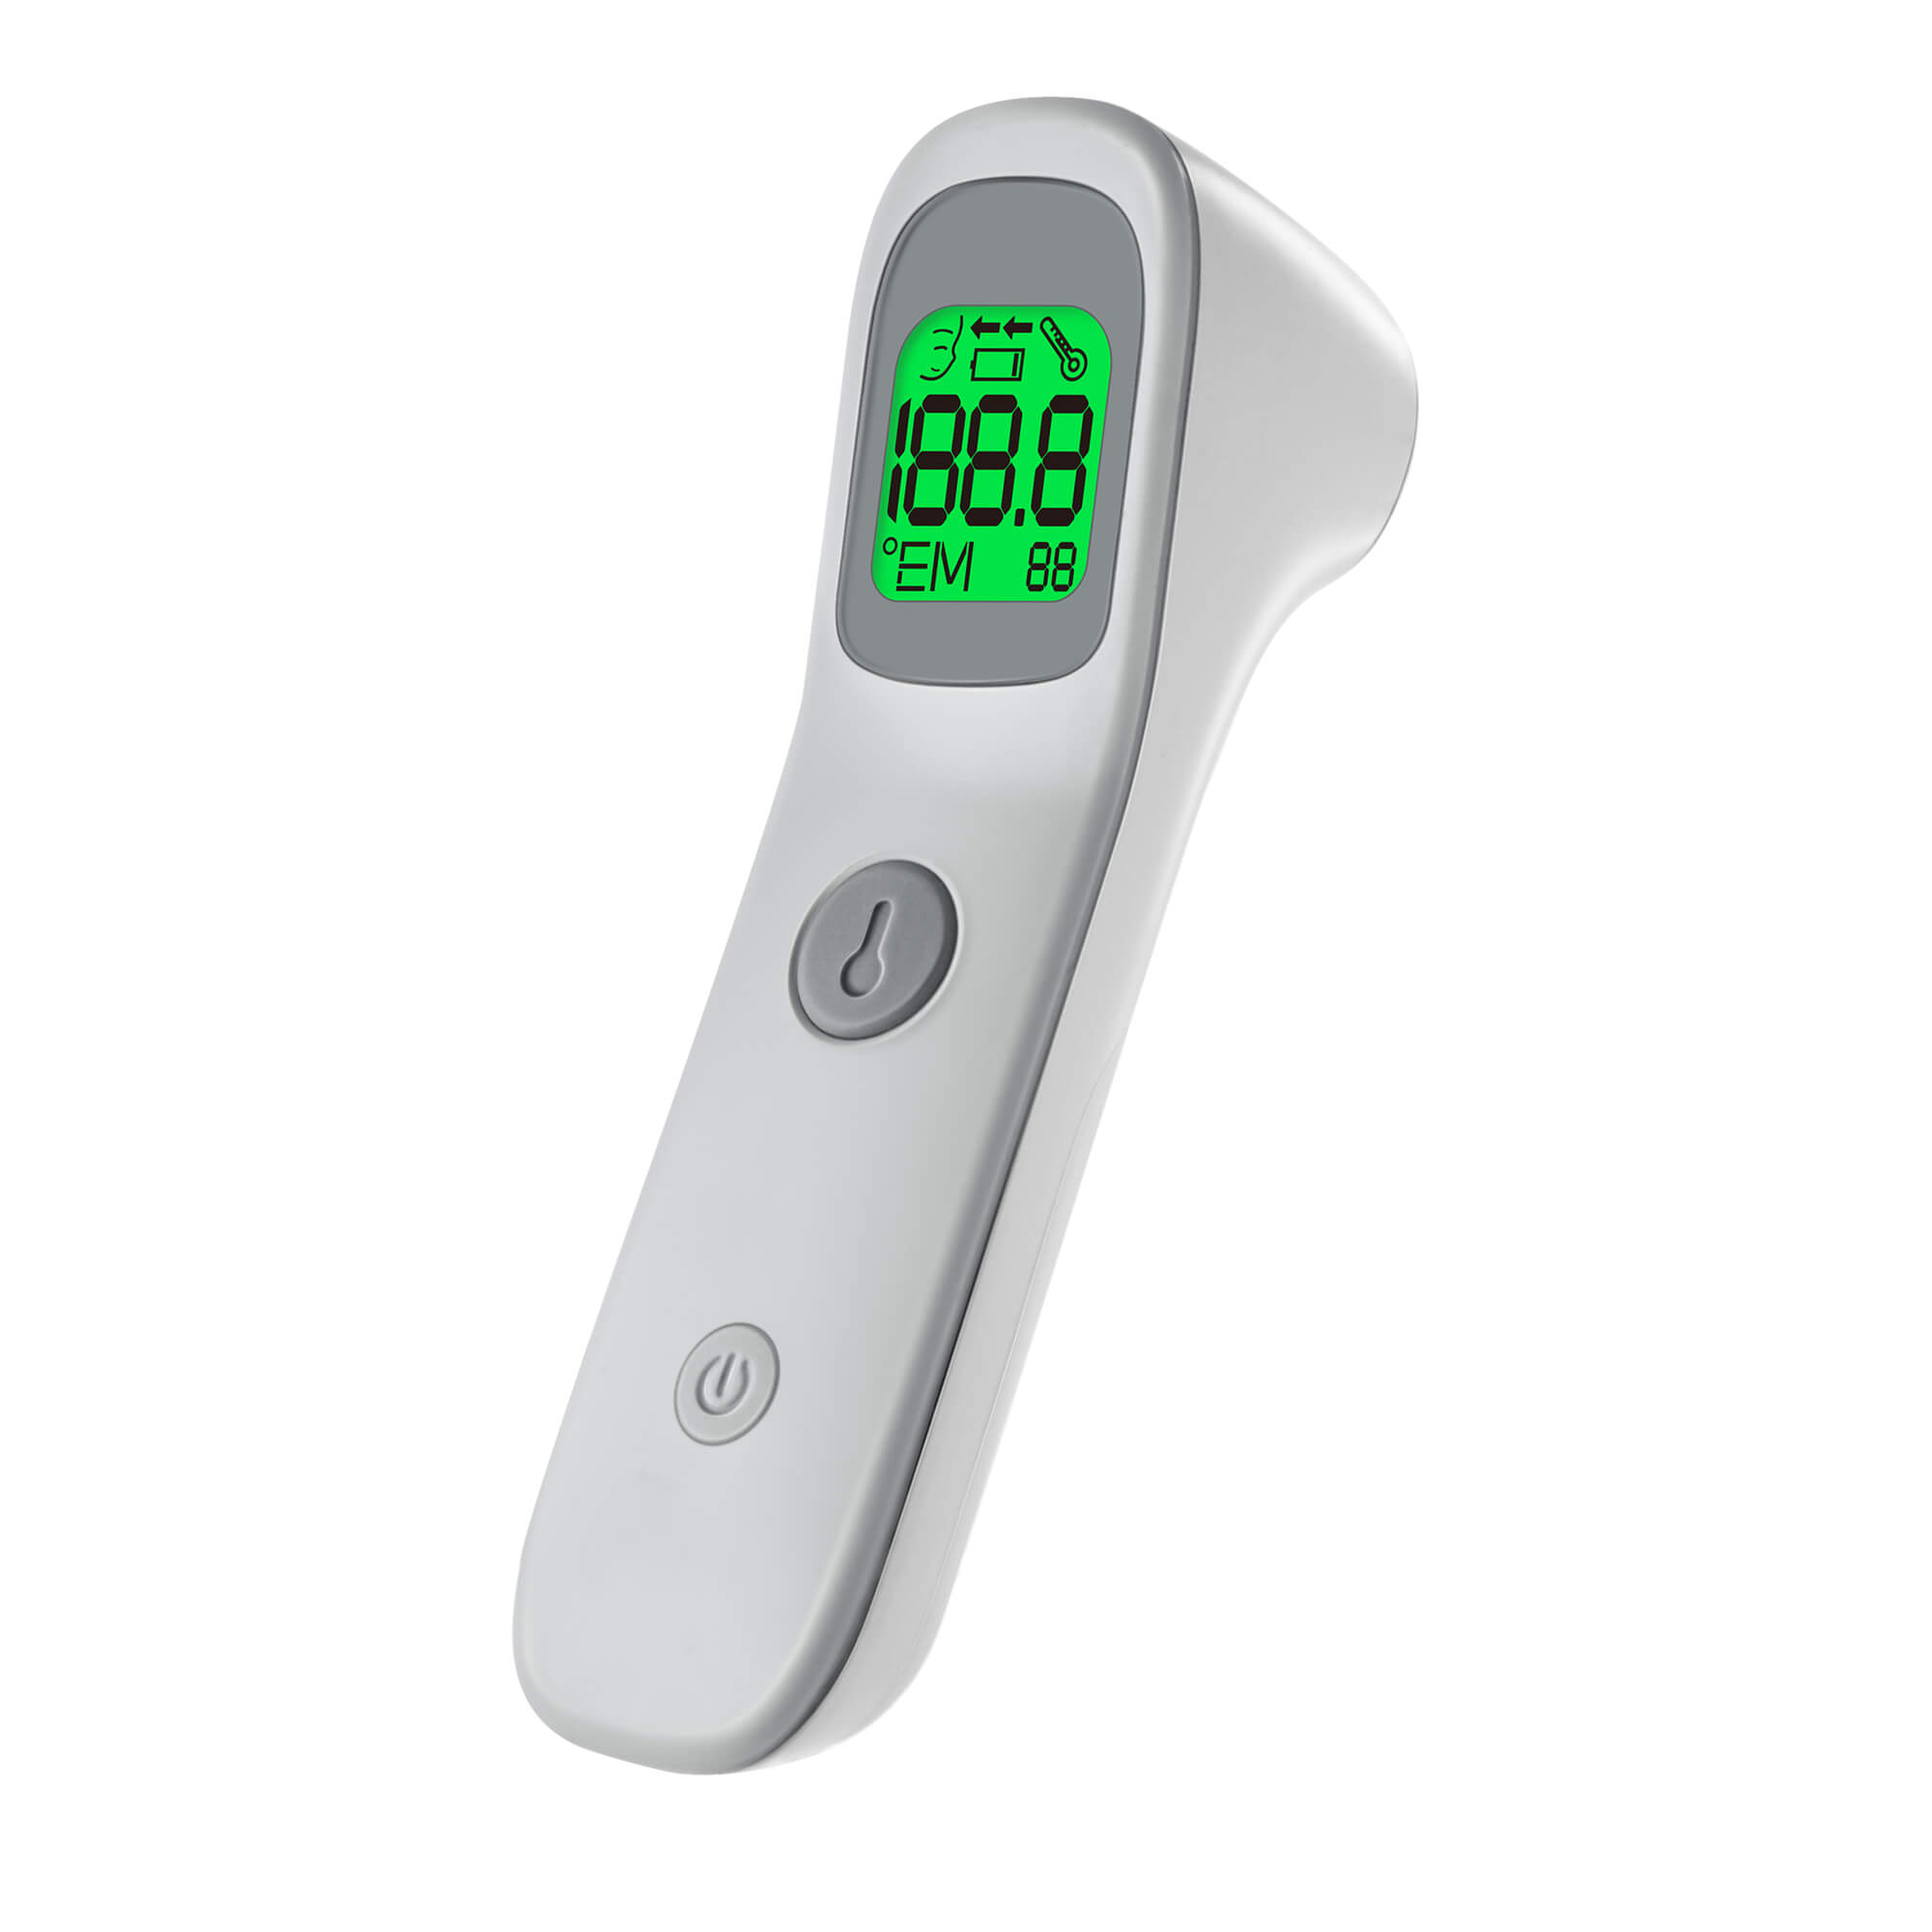 Infrarot-Thermometer Pro MPV mit Abstandskontrolle